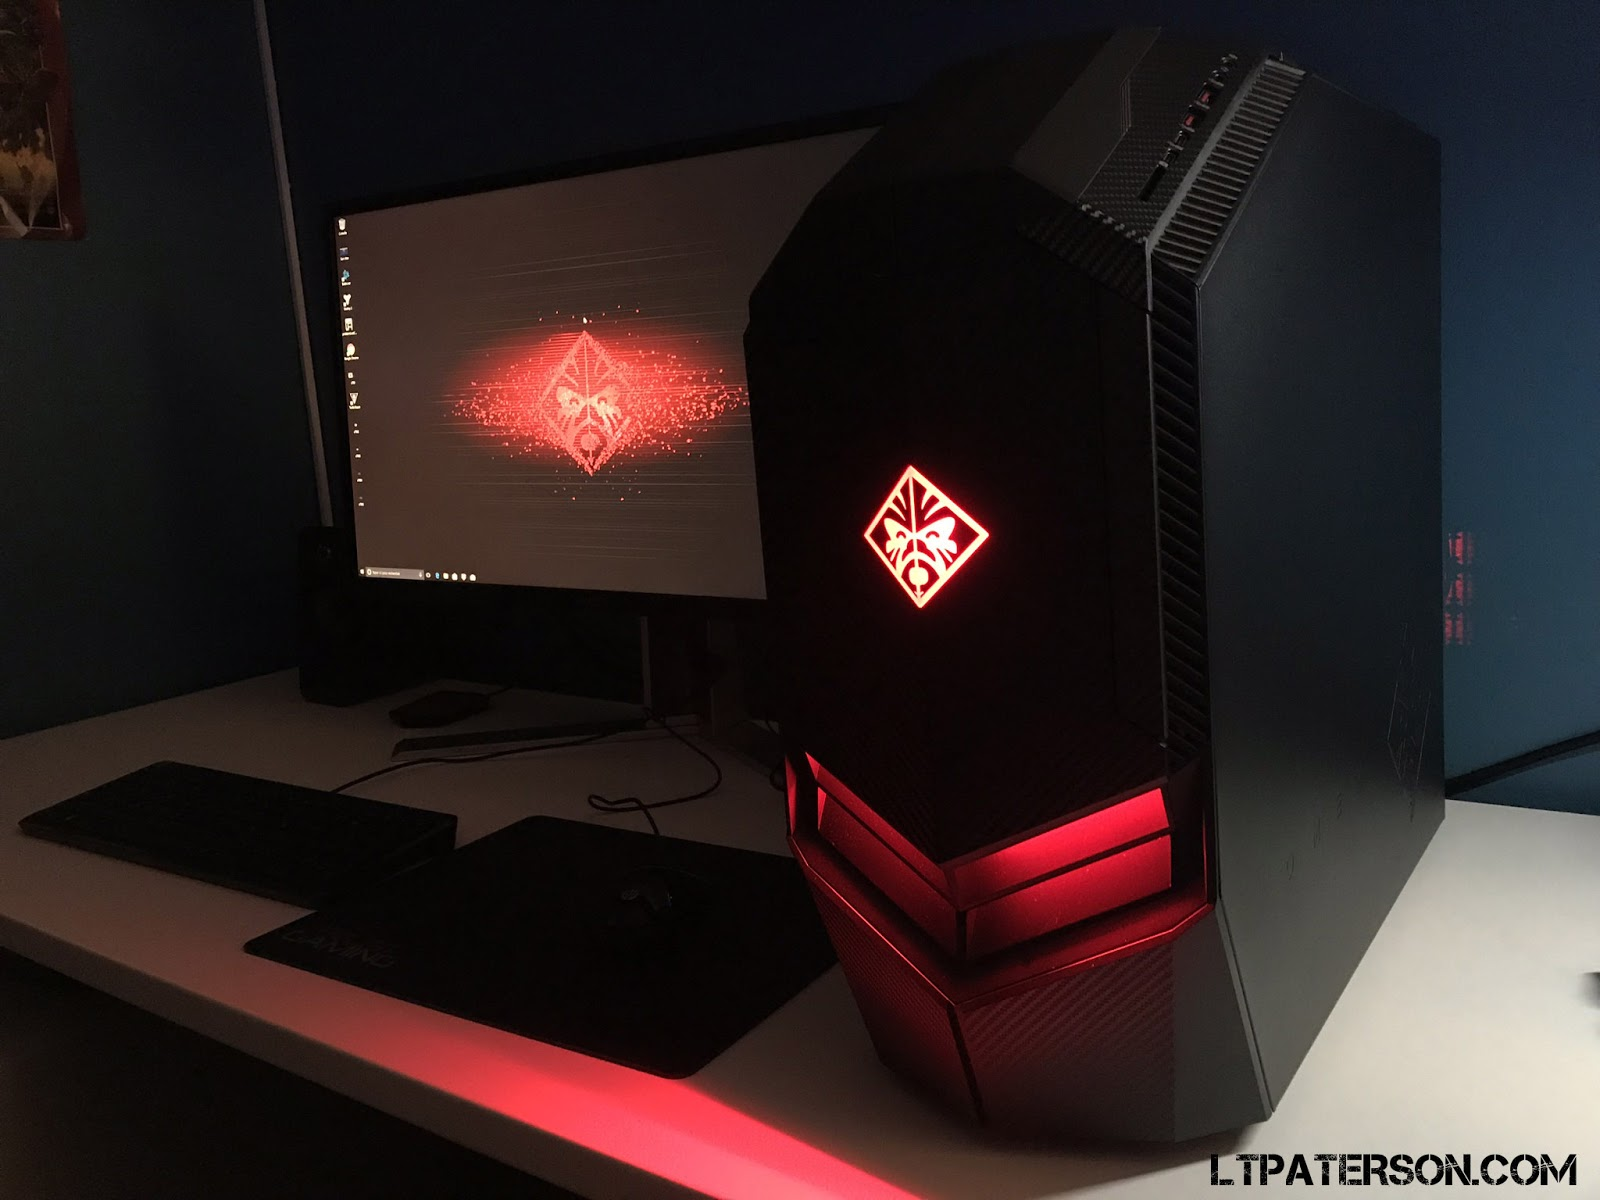 Test ordinateur gaming hp omen 880 081nf ltpaterson.com blog jeux